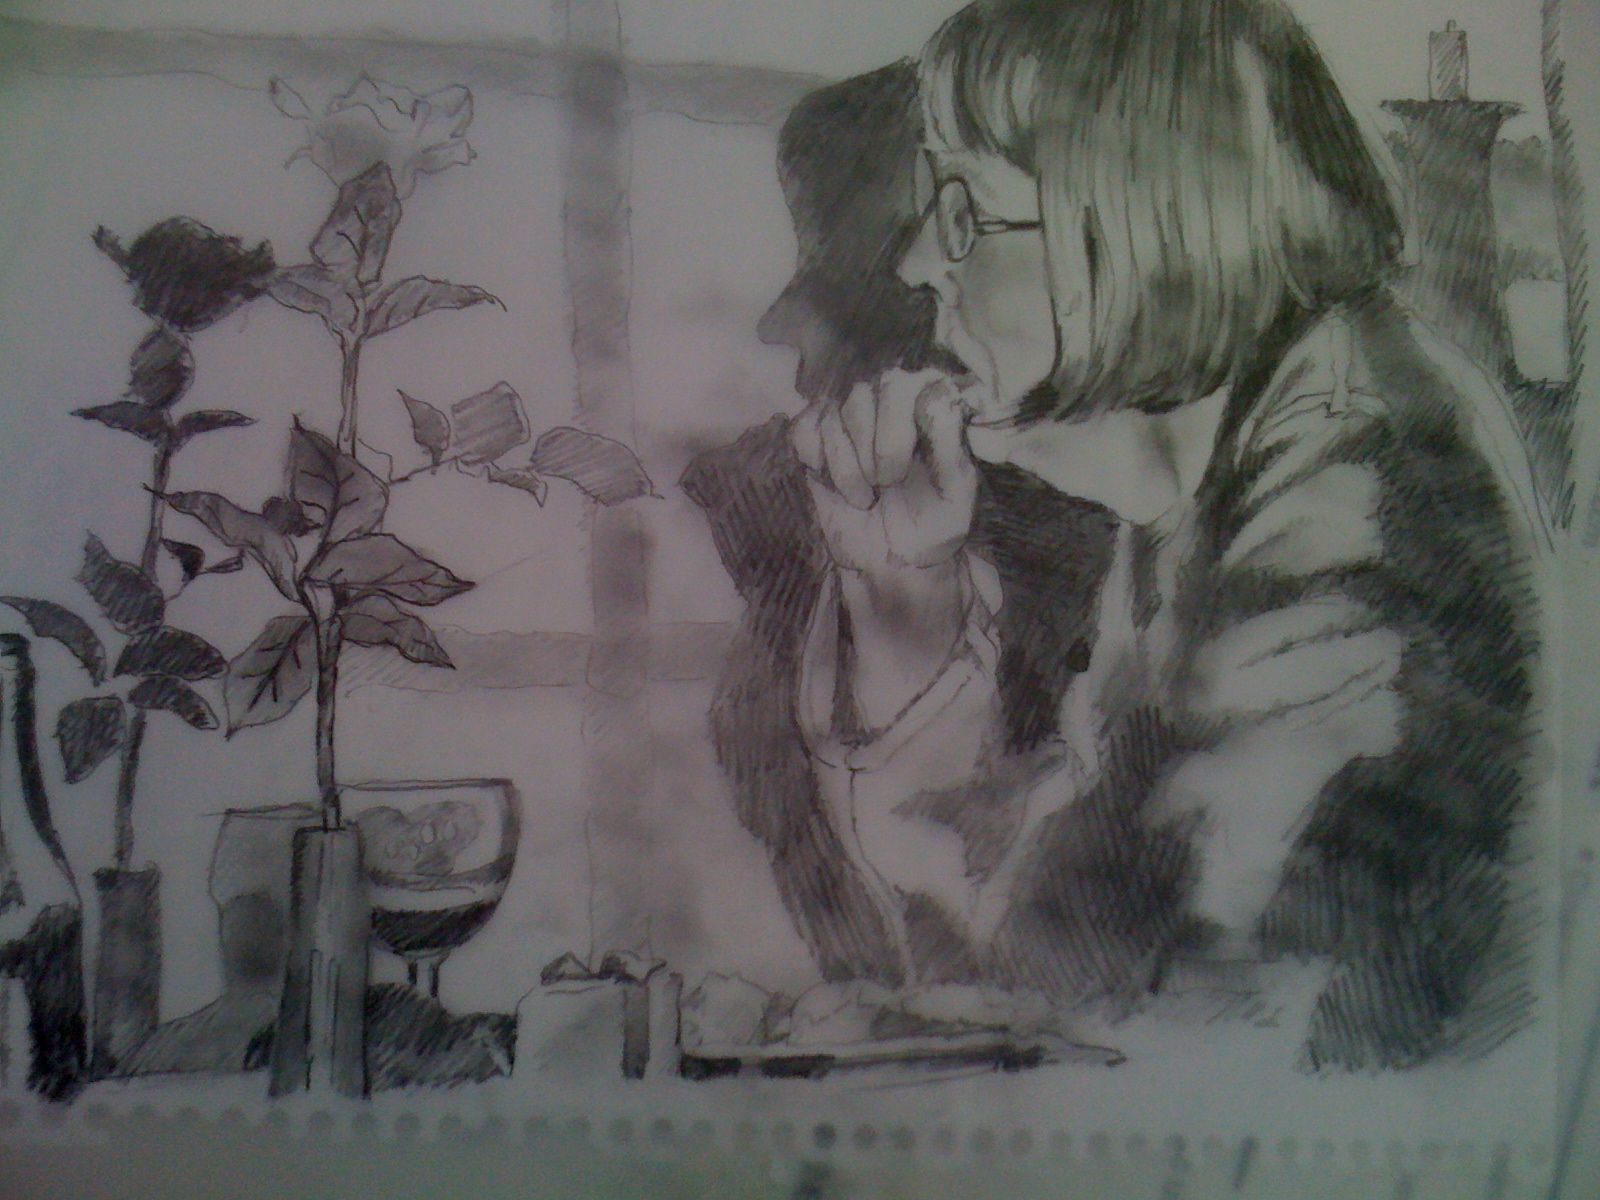 In gotland at dinner when suddenly i saw this woman alone snuck a photo and drew this later